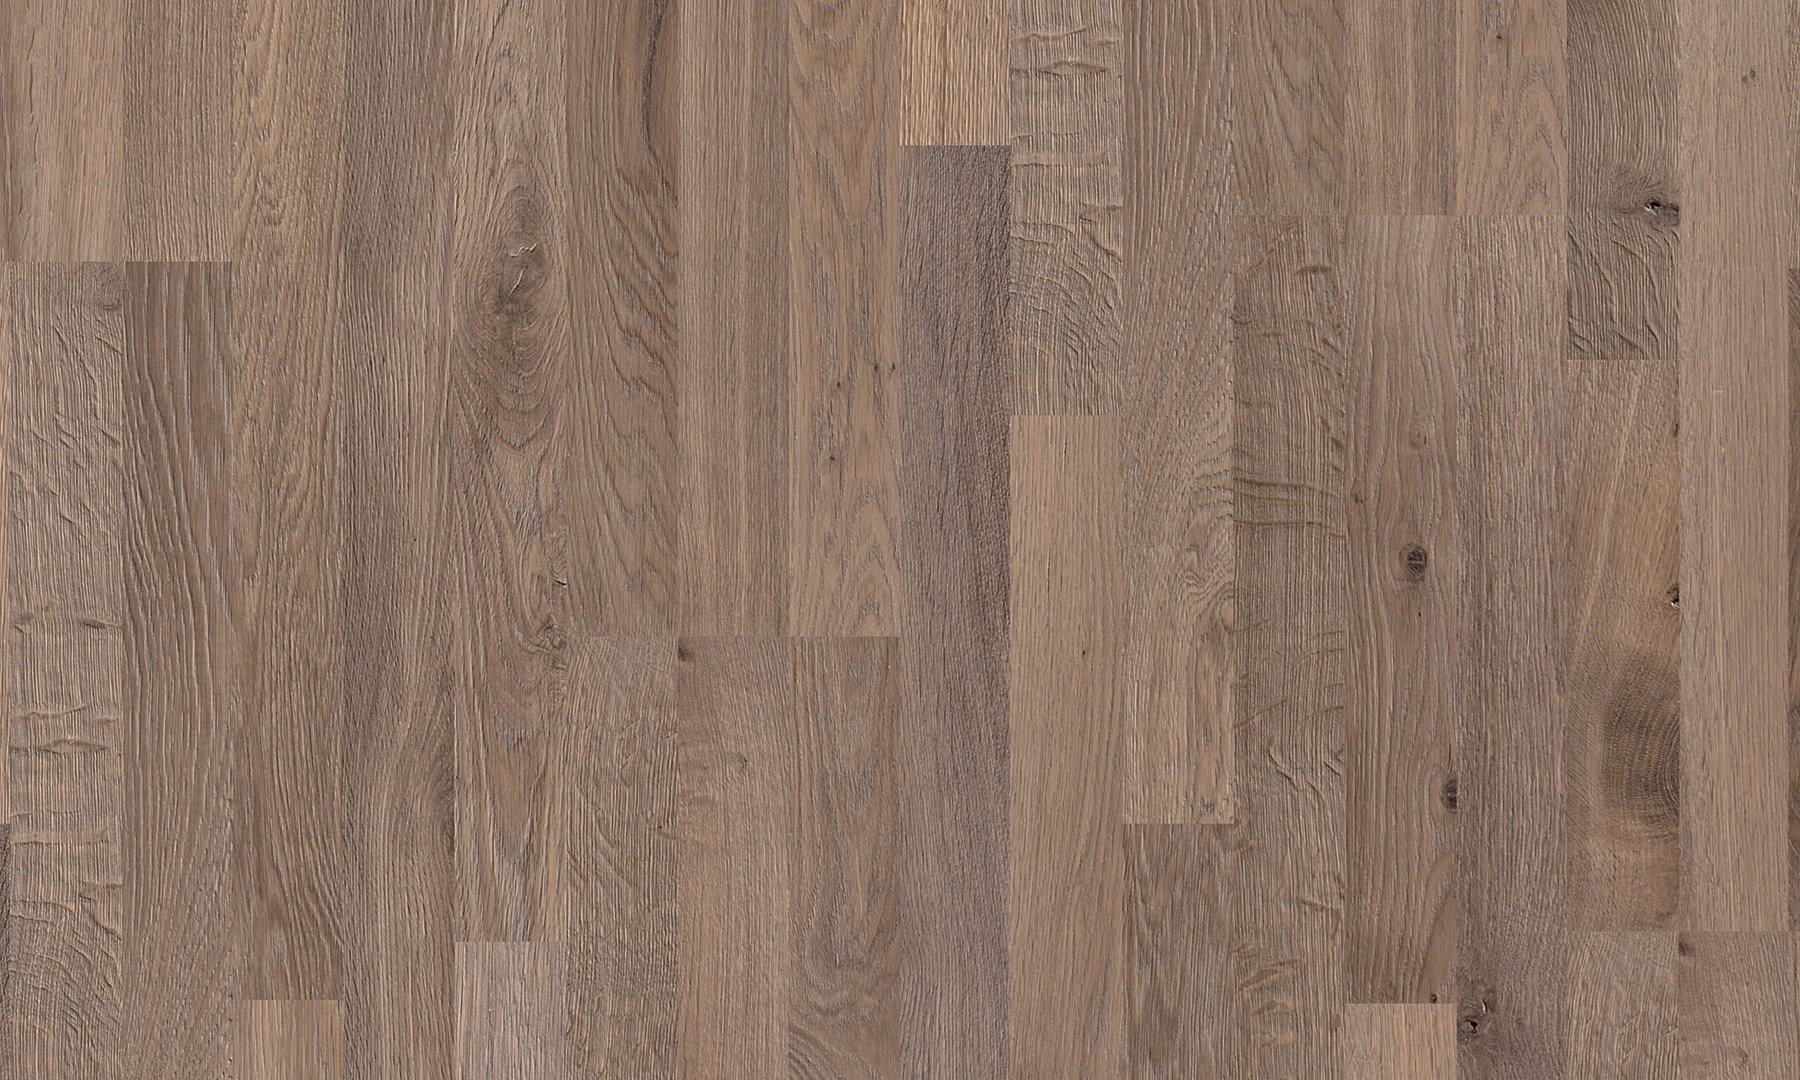 Laminate Flooring Dark Wild Oak 3 Strip By Pergo